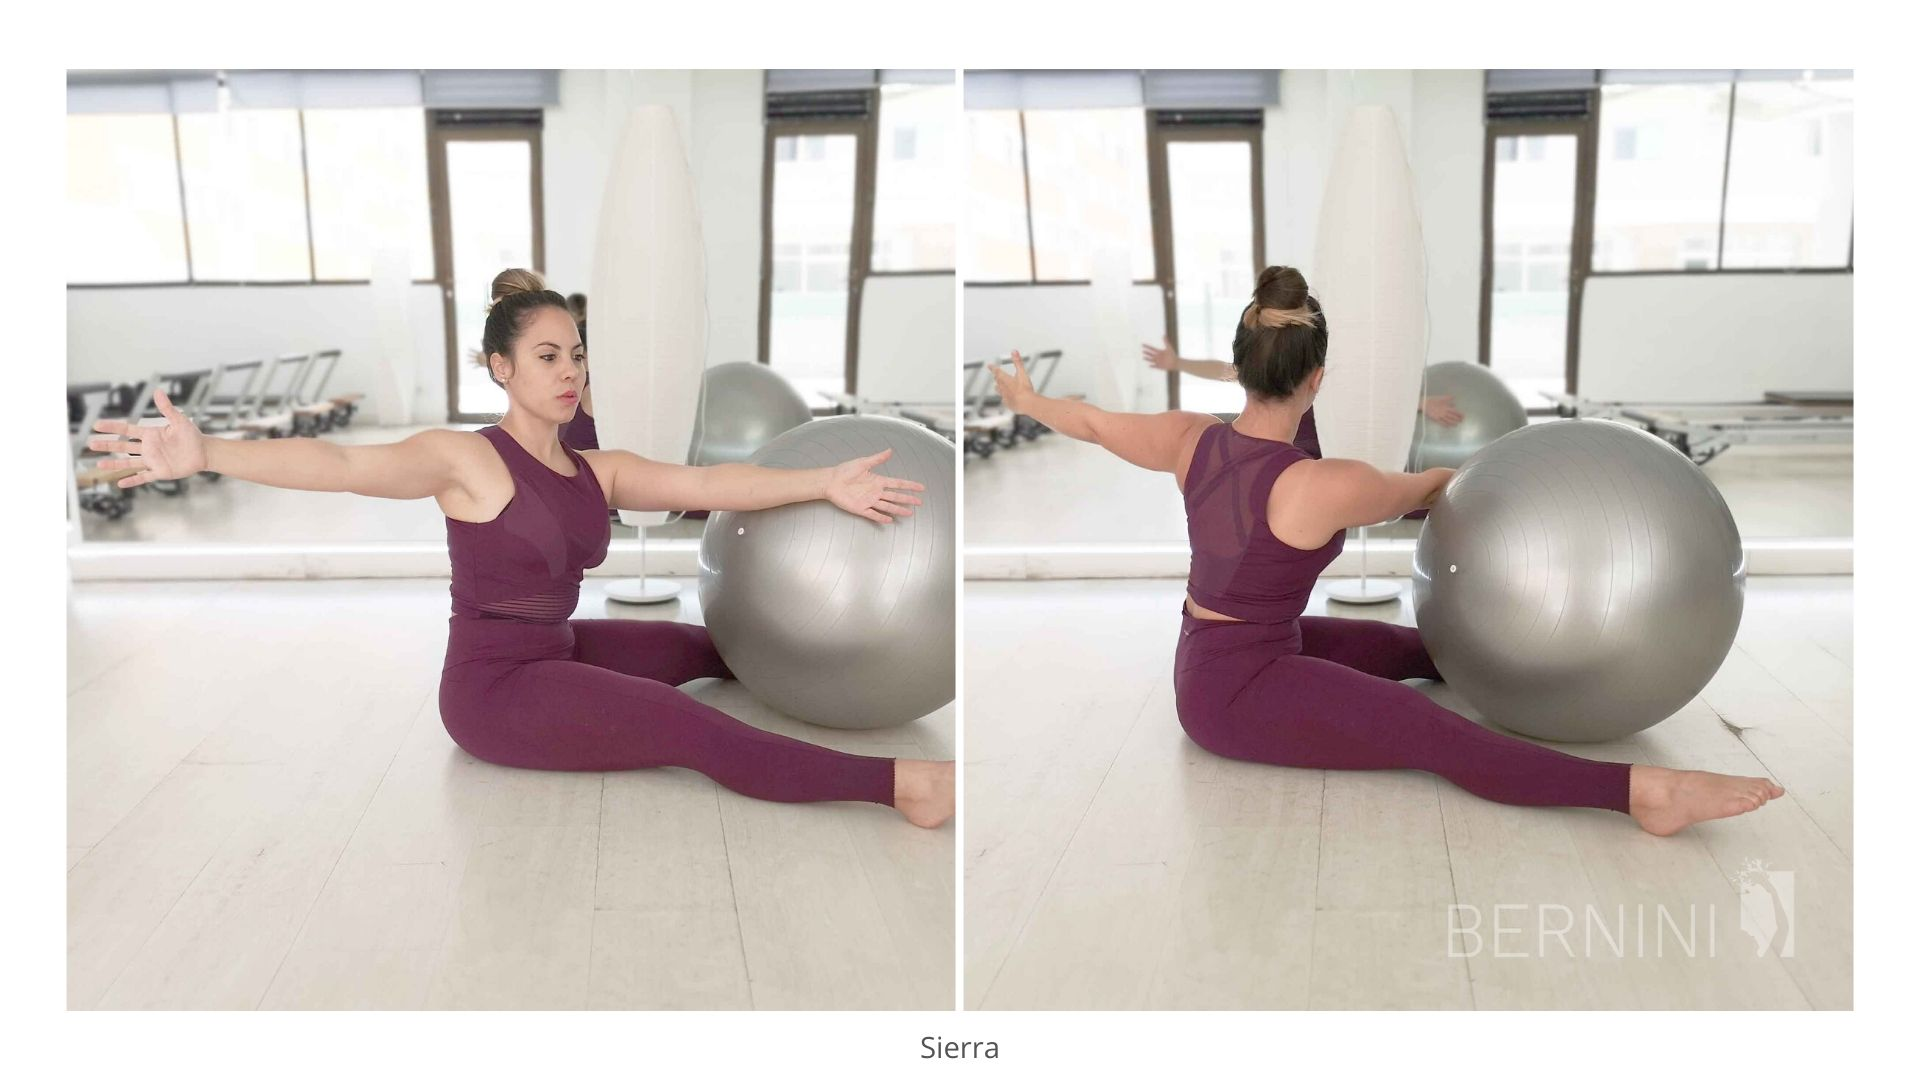 sierra fitball pilates bernini wellness